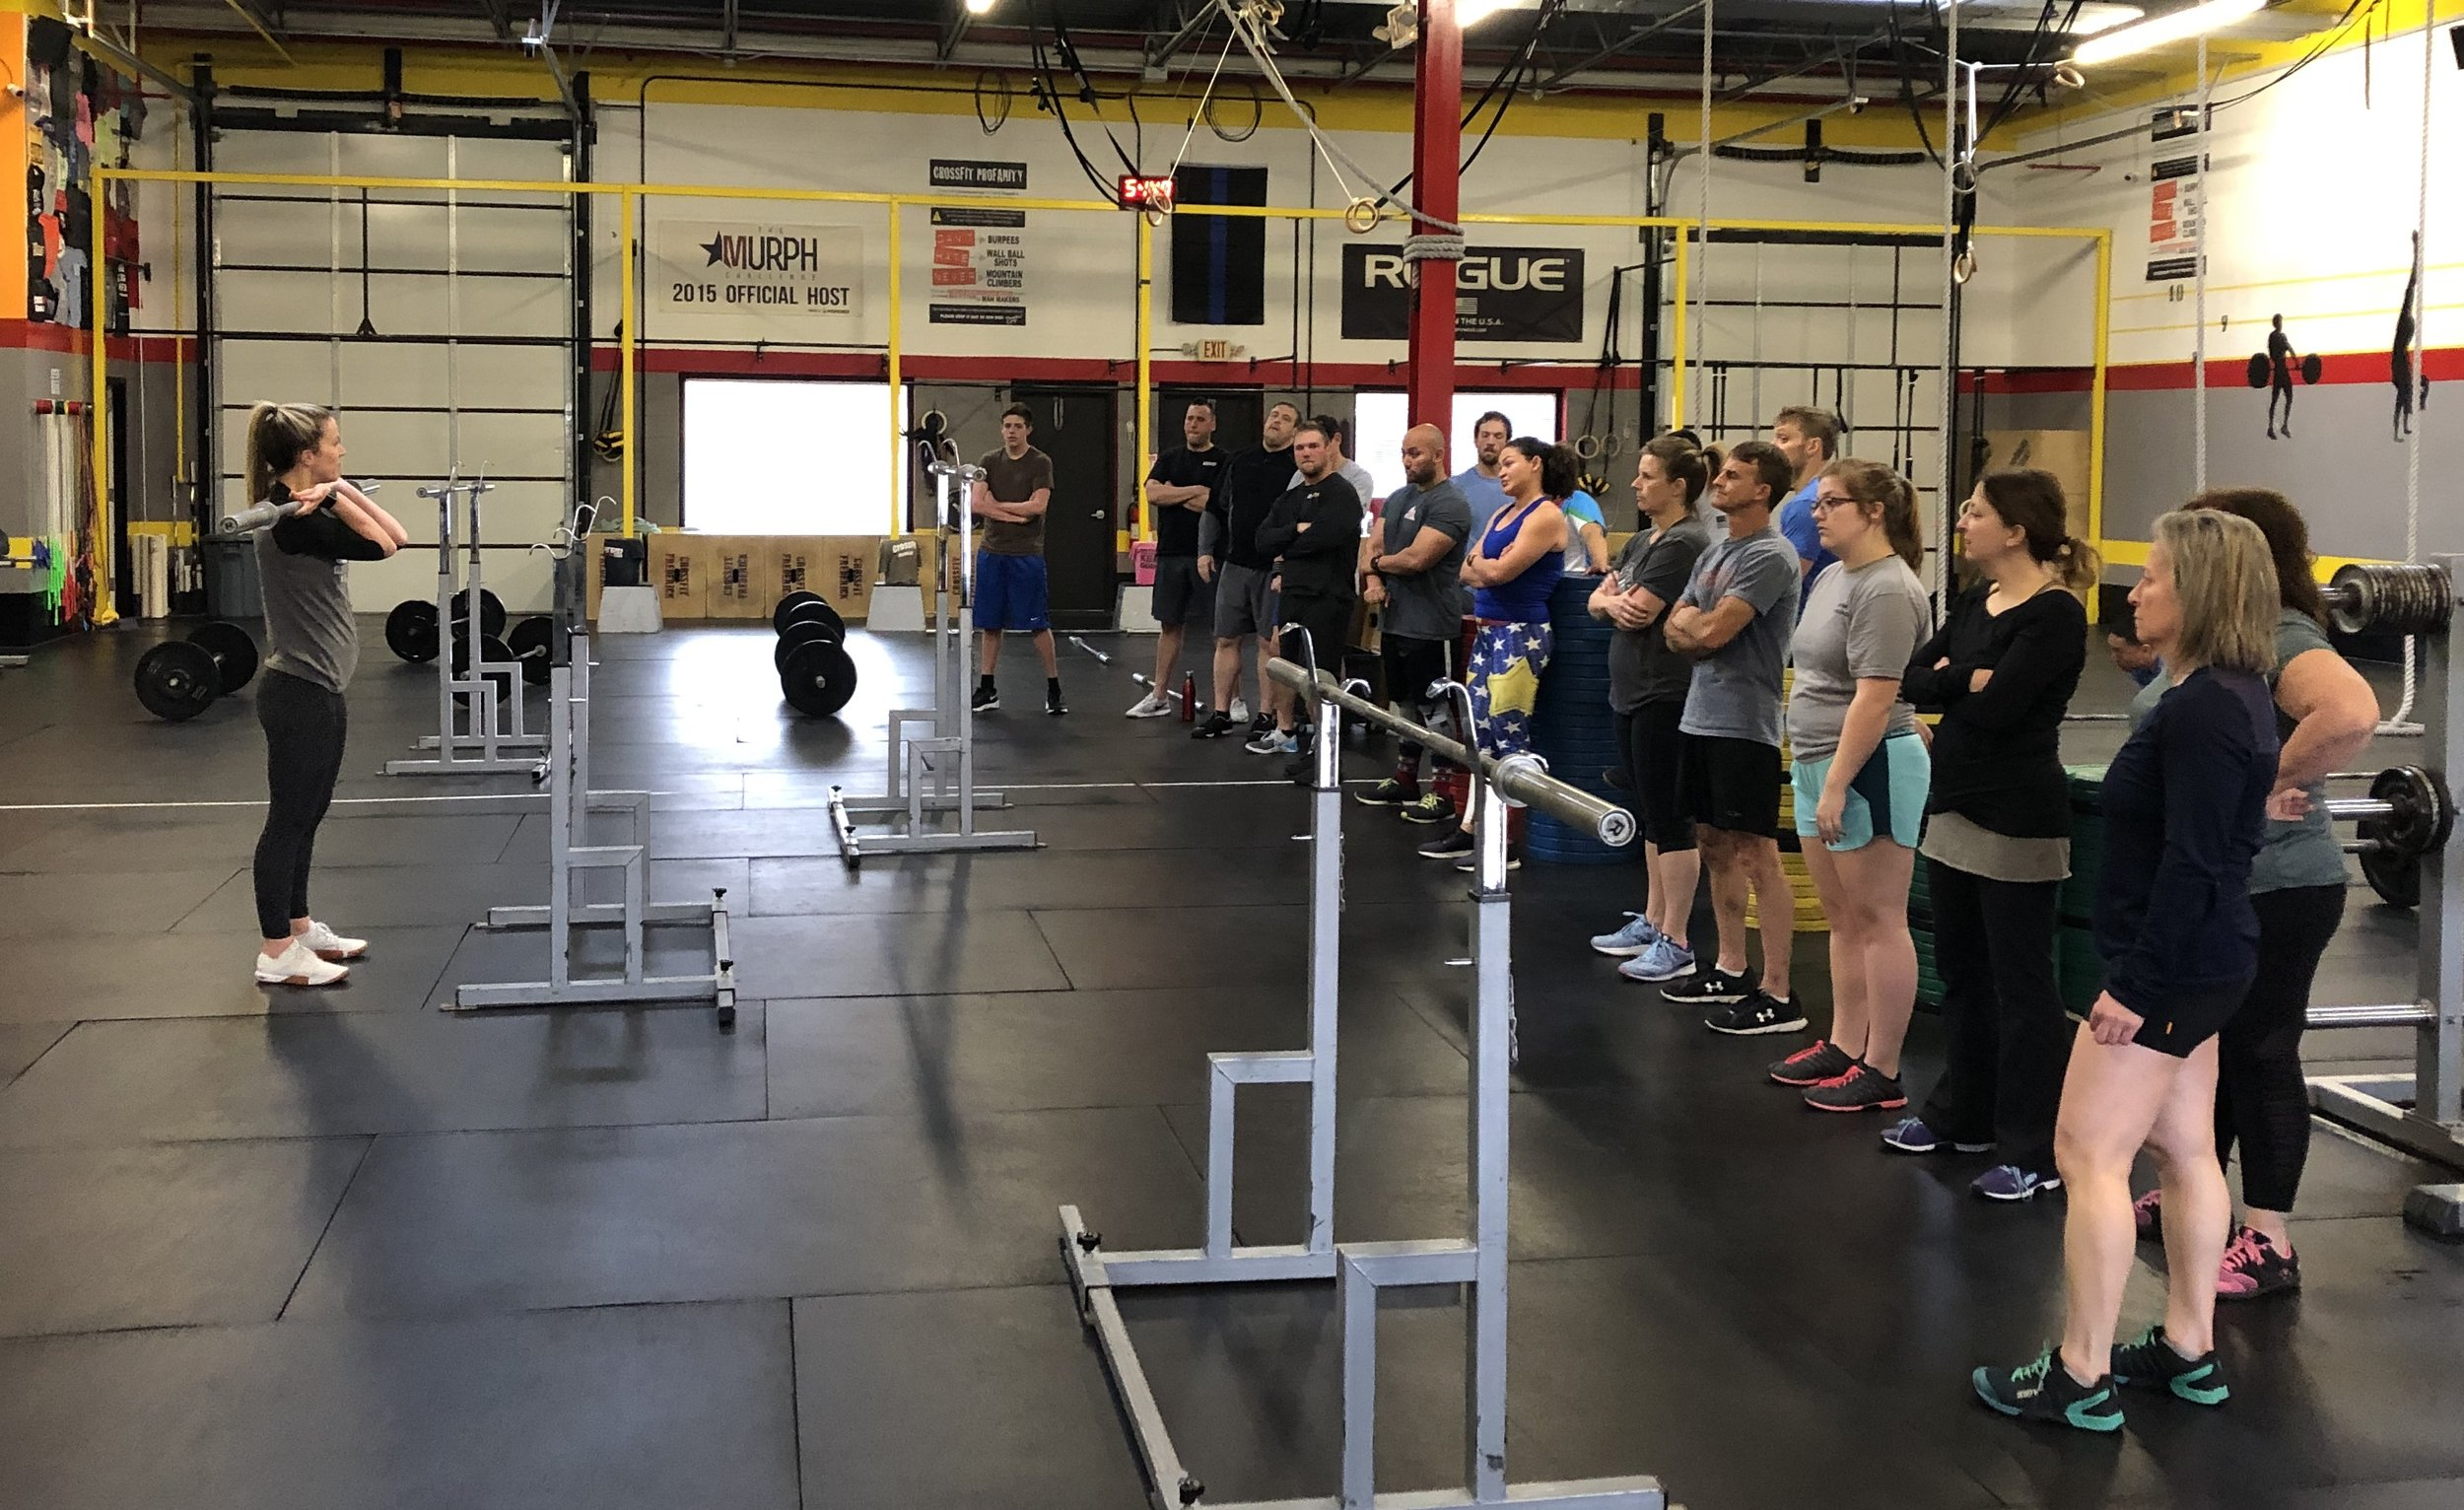 Detailed instruction is given by the Trainer prior to beginning any and all workouts at CrossFit Frederick. Here is Coach Hannah instructing on the Shoulder Press.